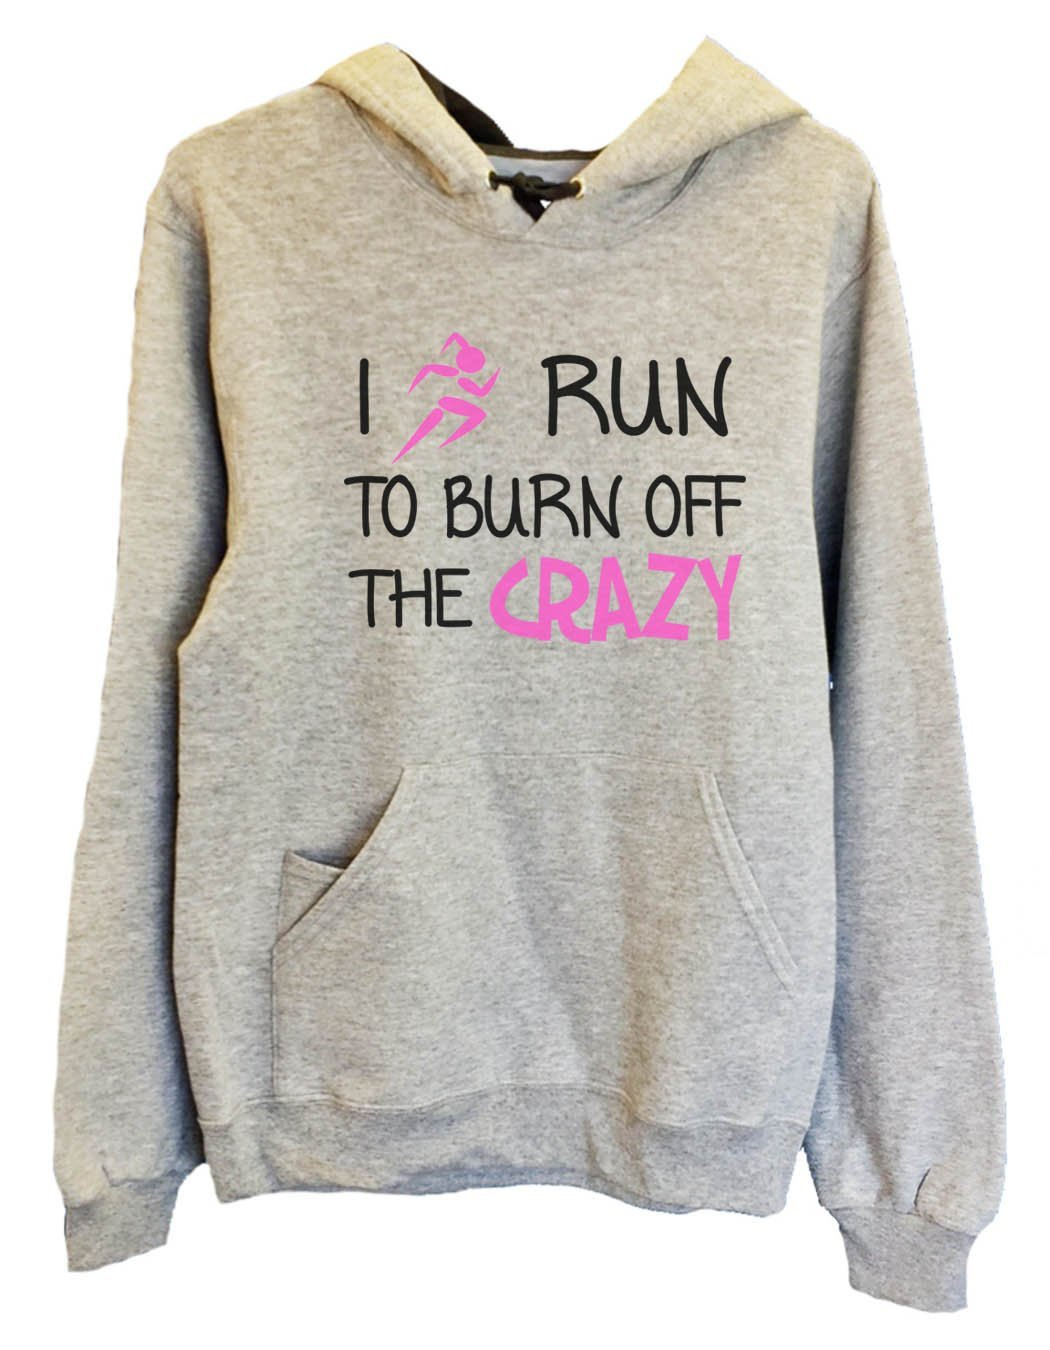 UNISEX HOODIE - I run to burn off the crazy - FUNNY MENS AND WOMENS HOODED SWEATSHIRTS - 532 Funny Shirt